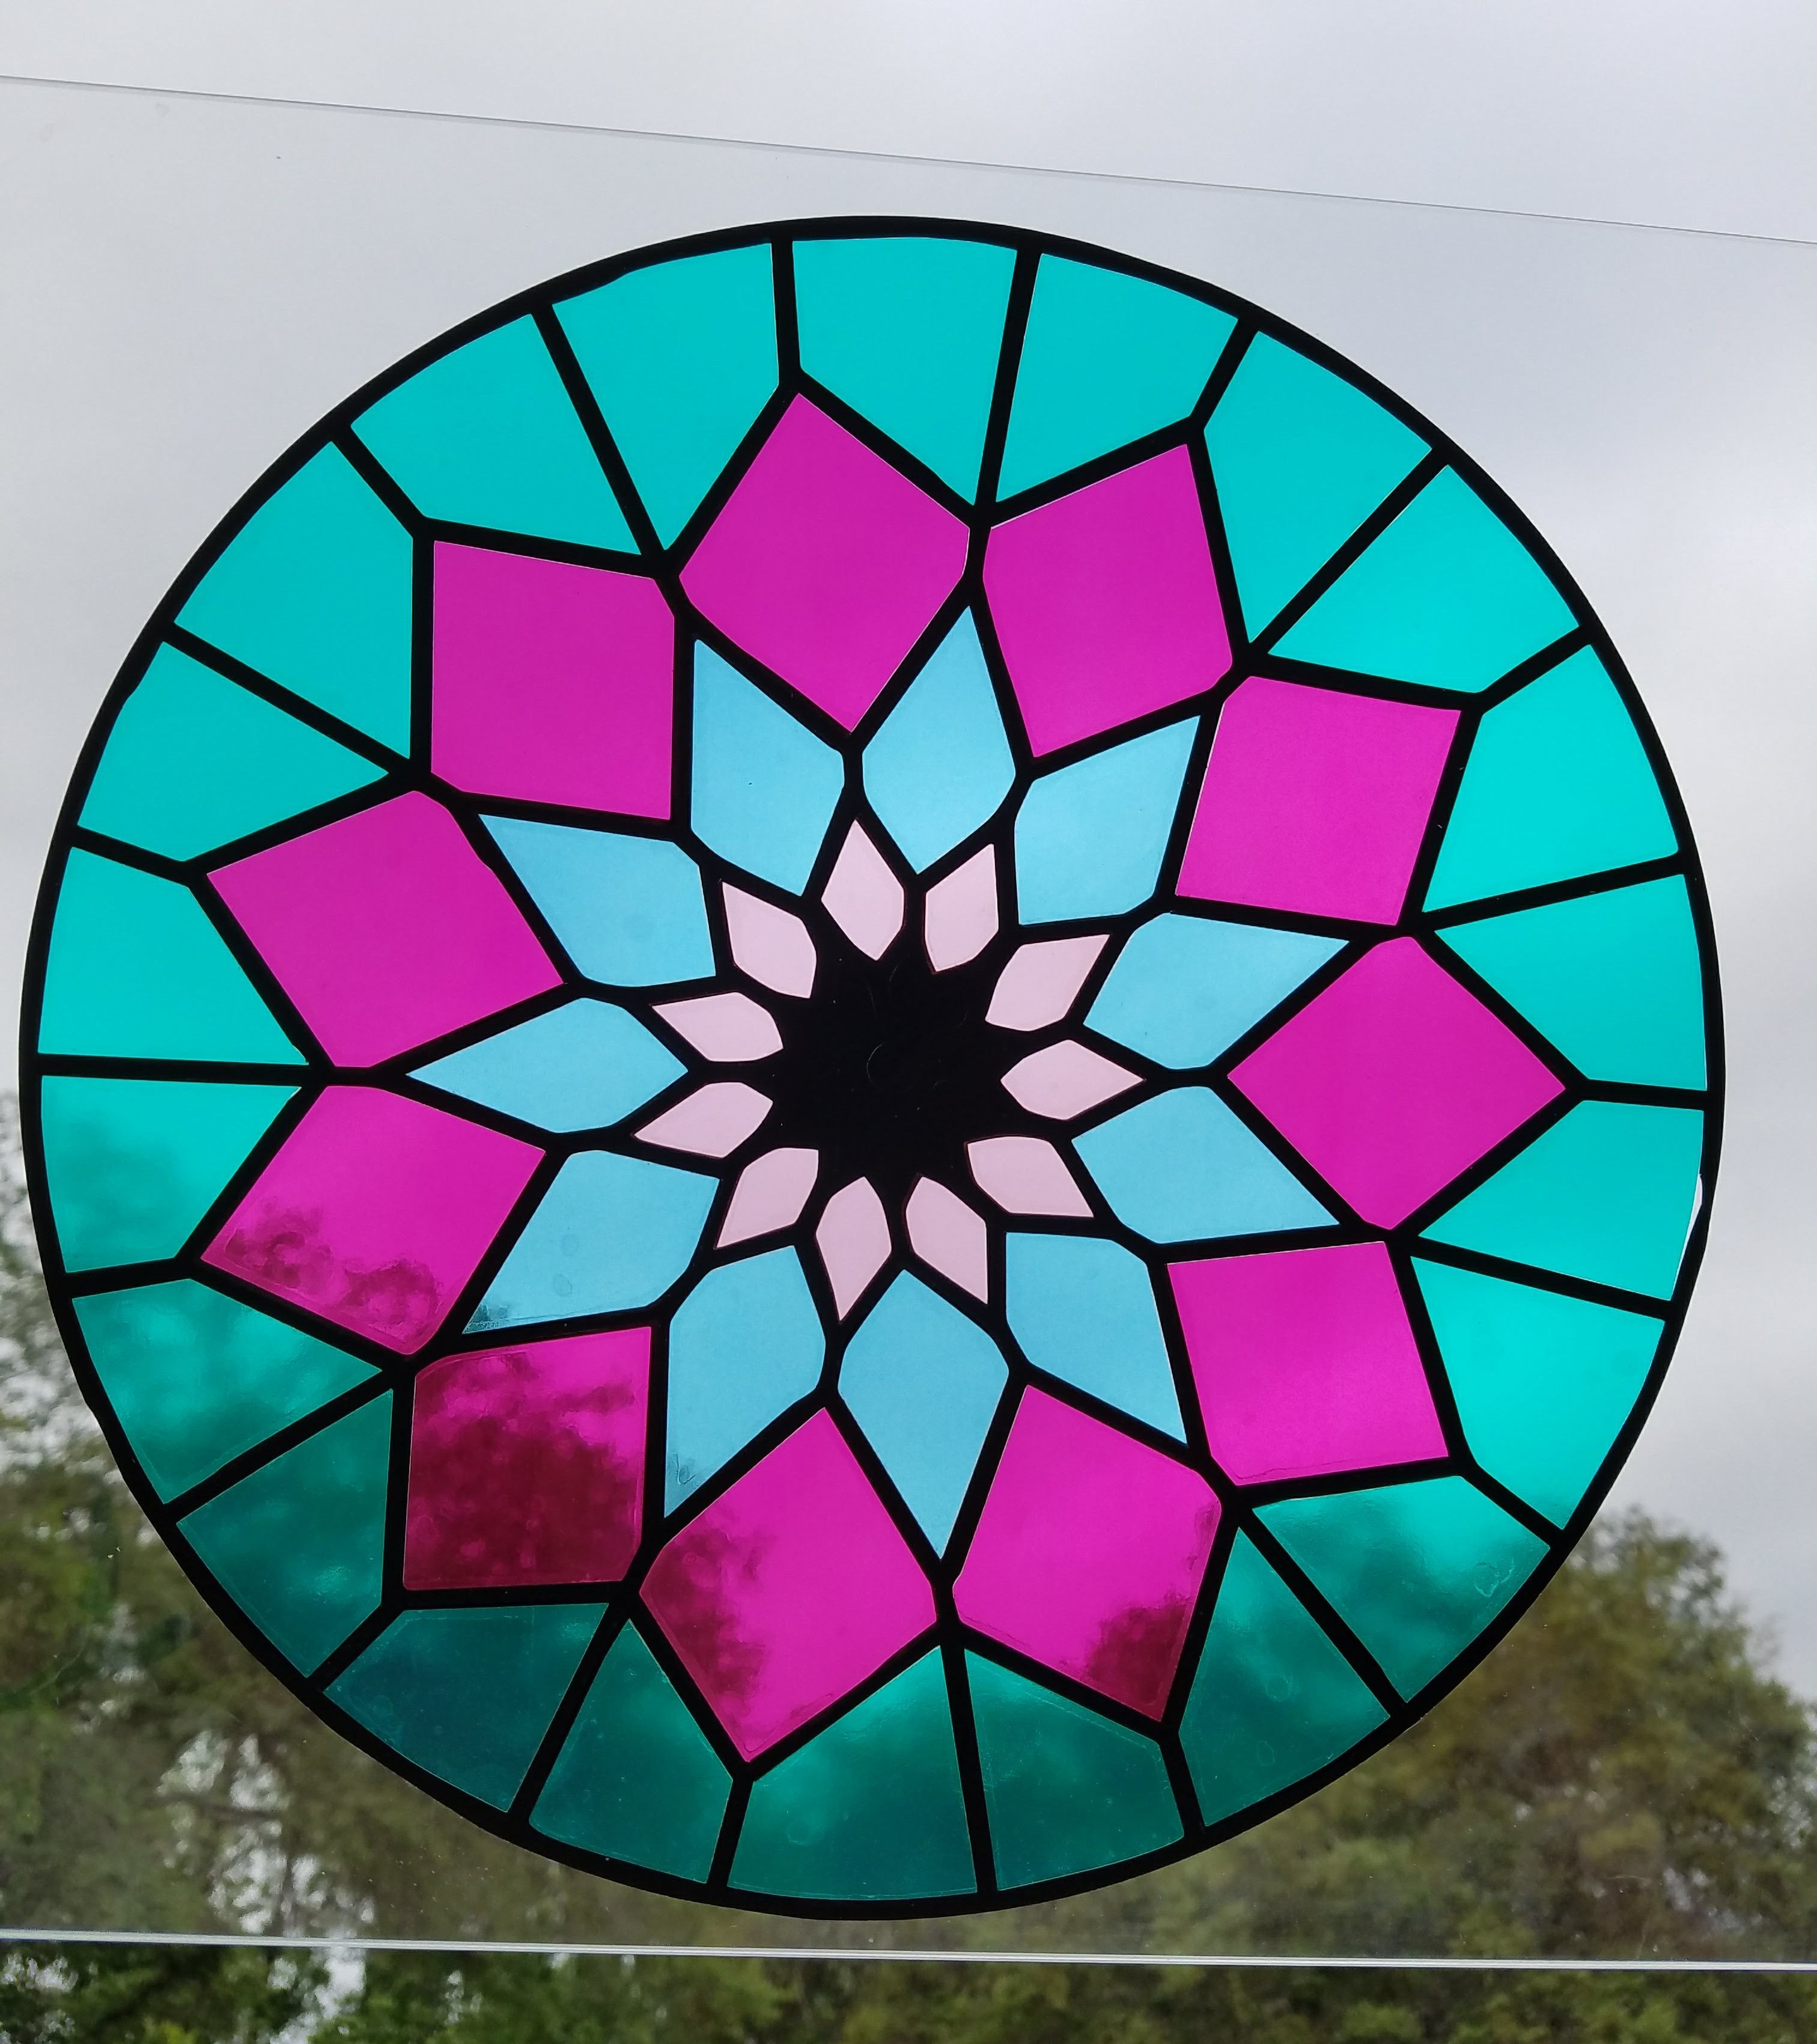 Stained Glass Made With Styletechcraft Transparent Vinyl #Craftvinyl #Cricut #Cricutmade